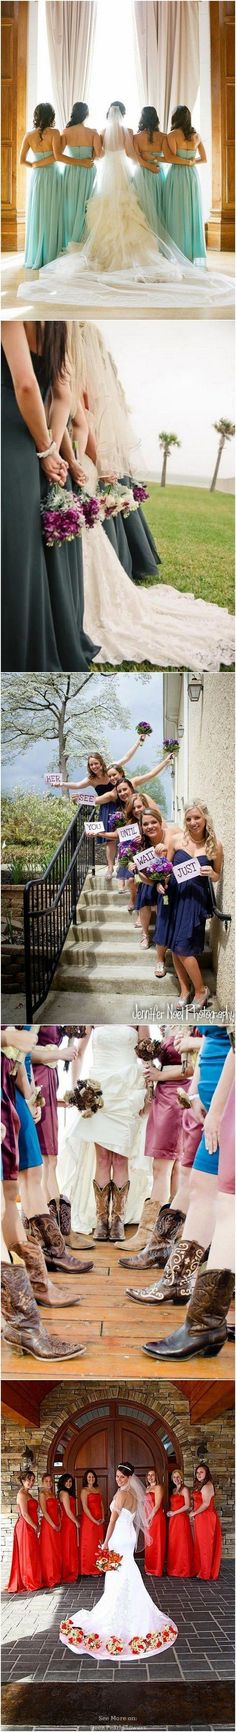 Wedding Photos With Your Bridesmaids  in the special wedding ceremony. #Wedding #Ceremony  #Photography